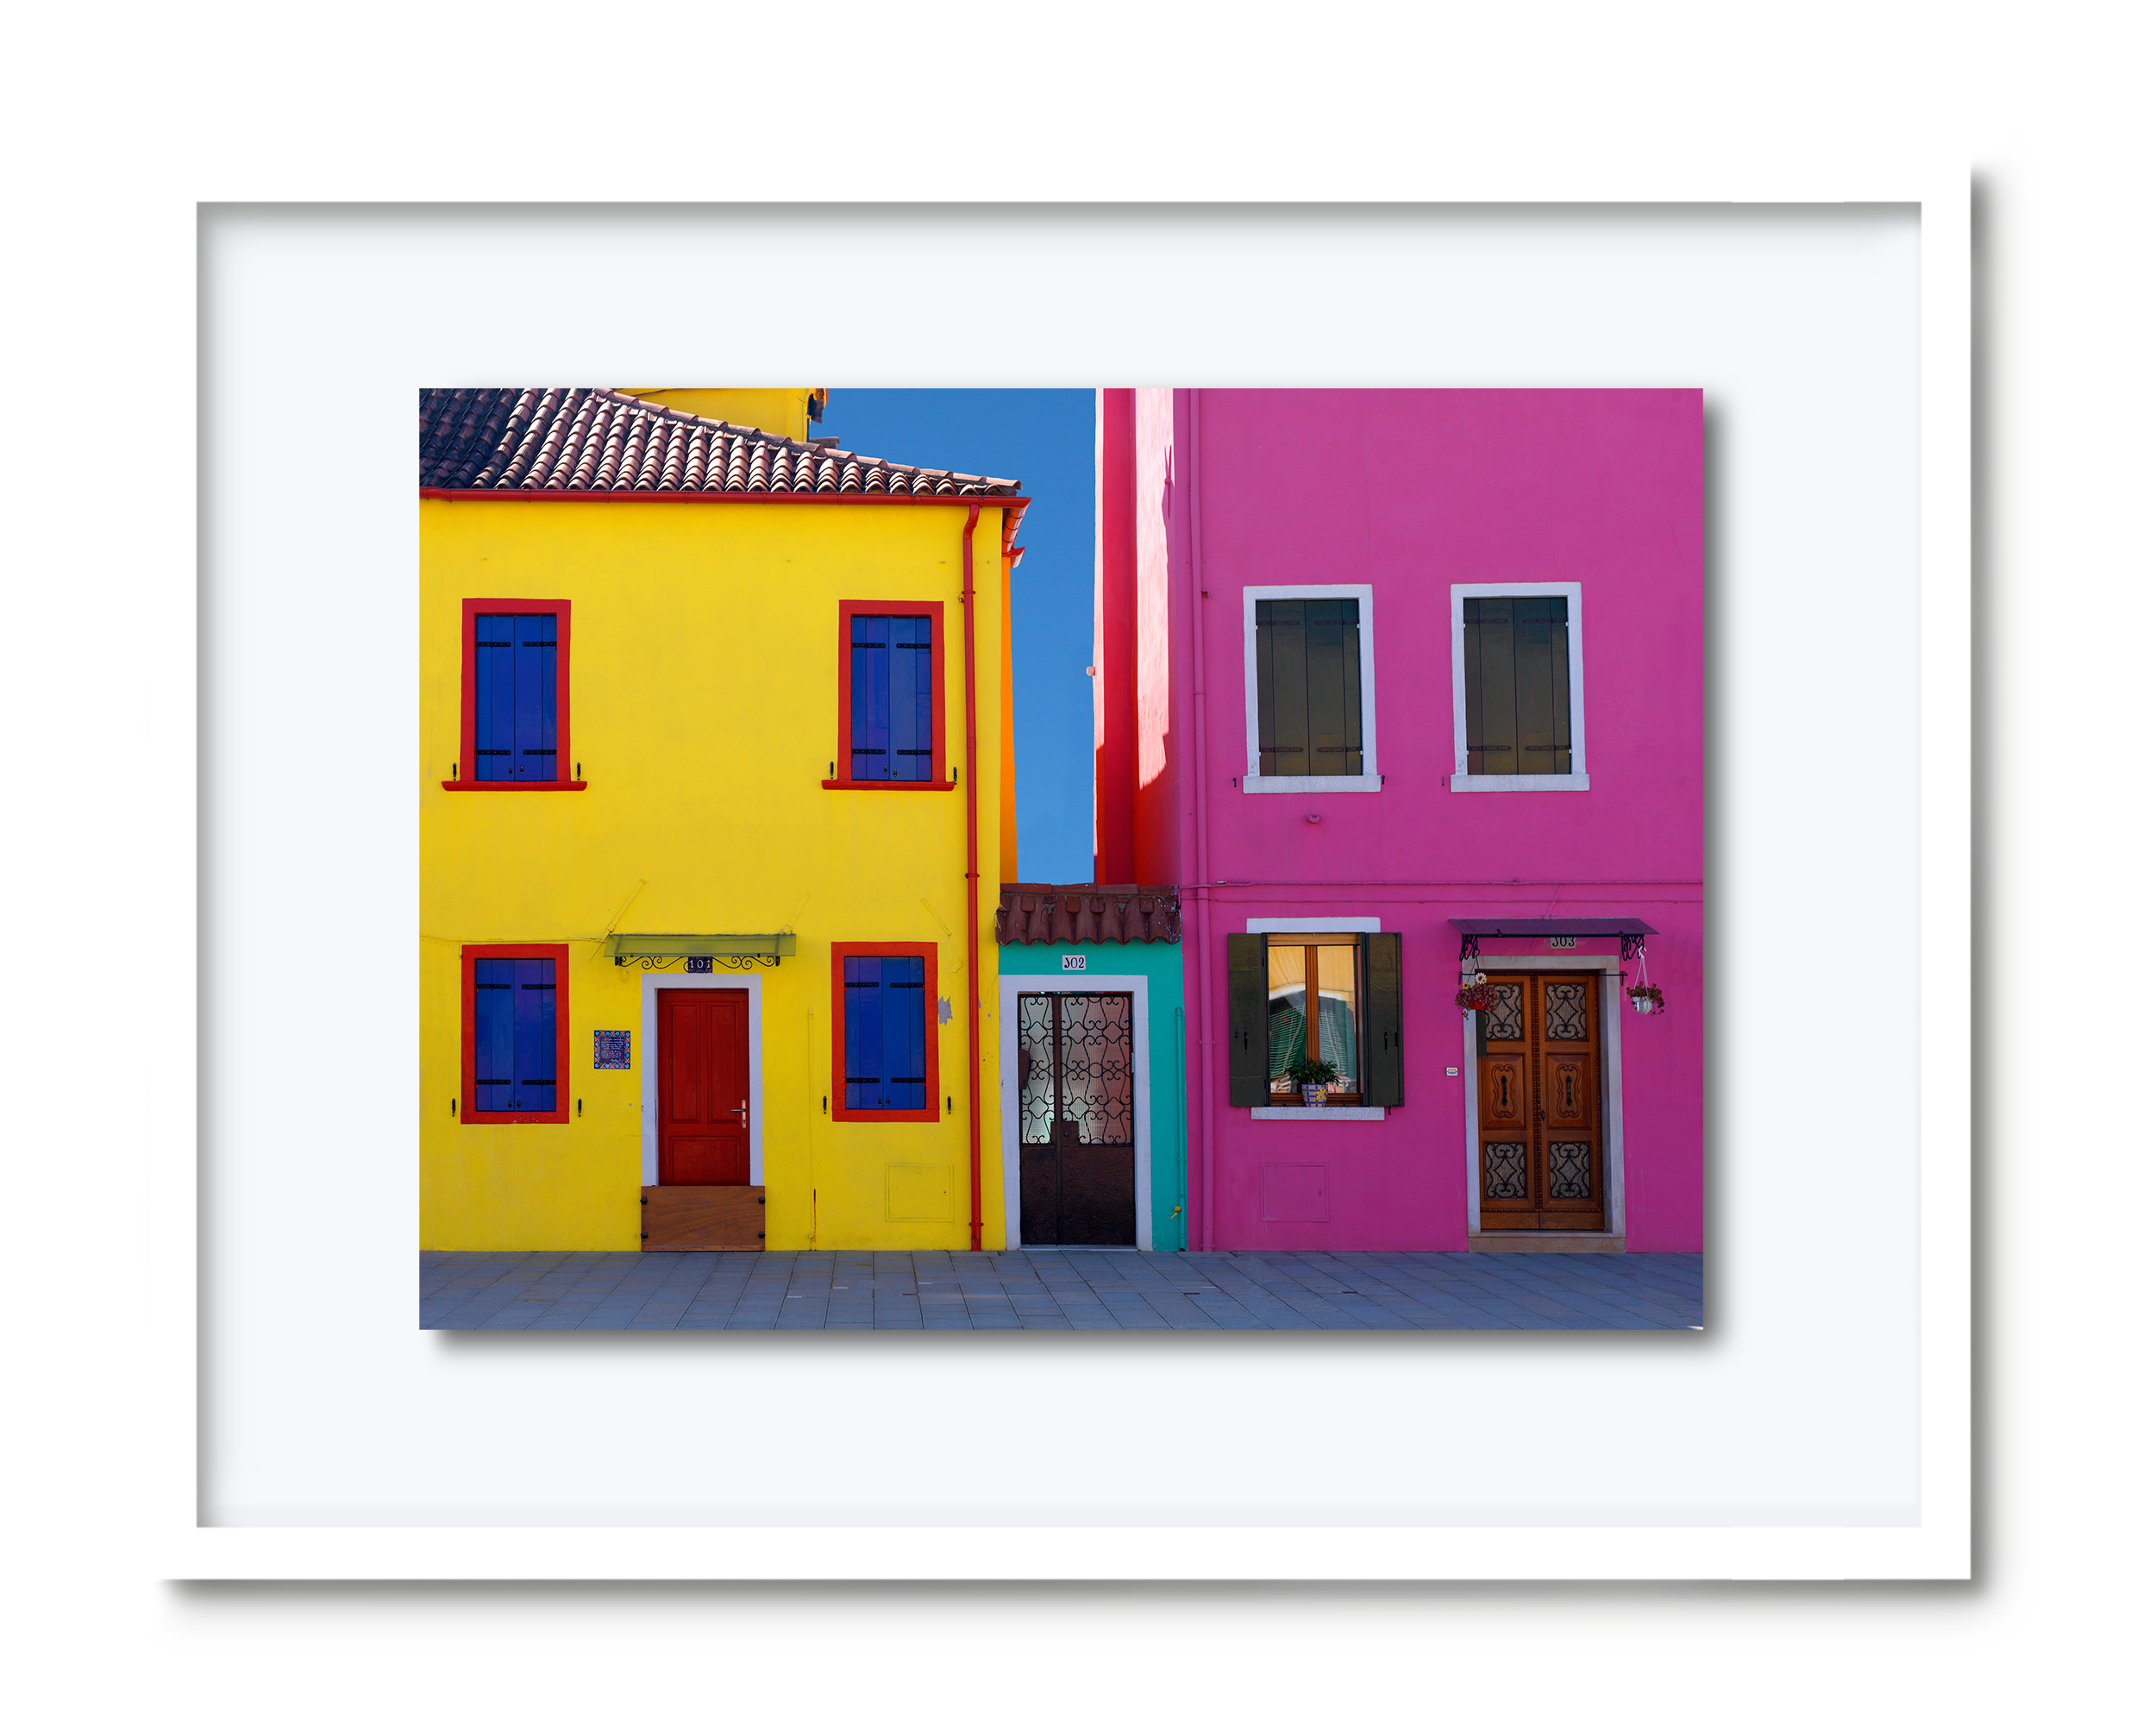 14.david-pearce-colored-building-venice..png